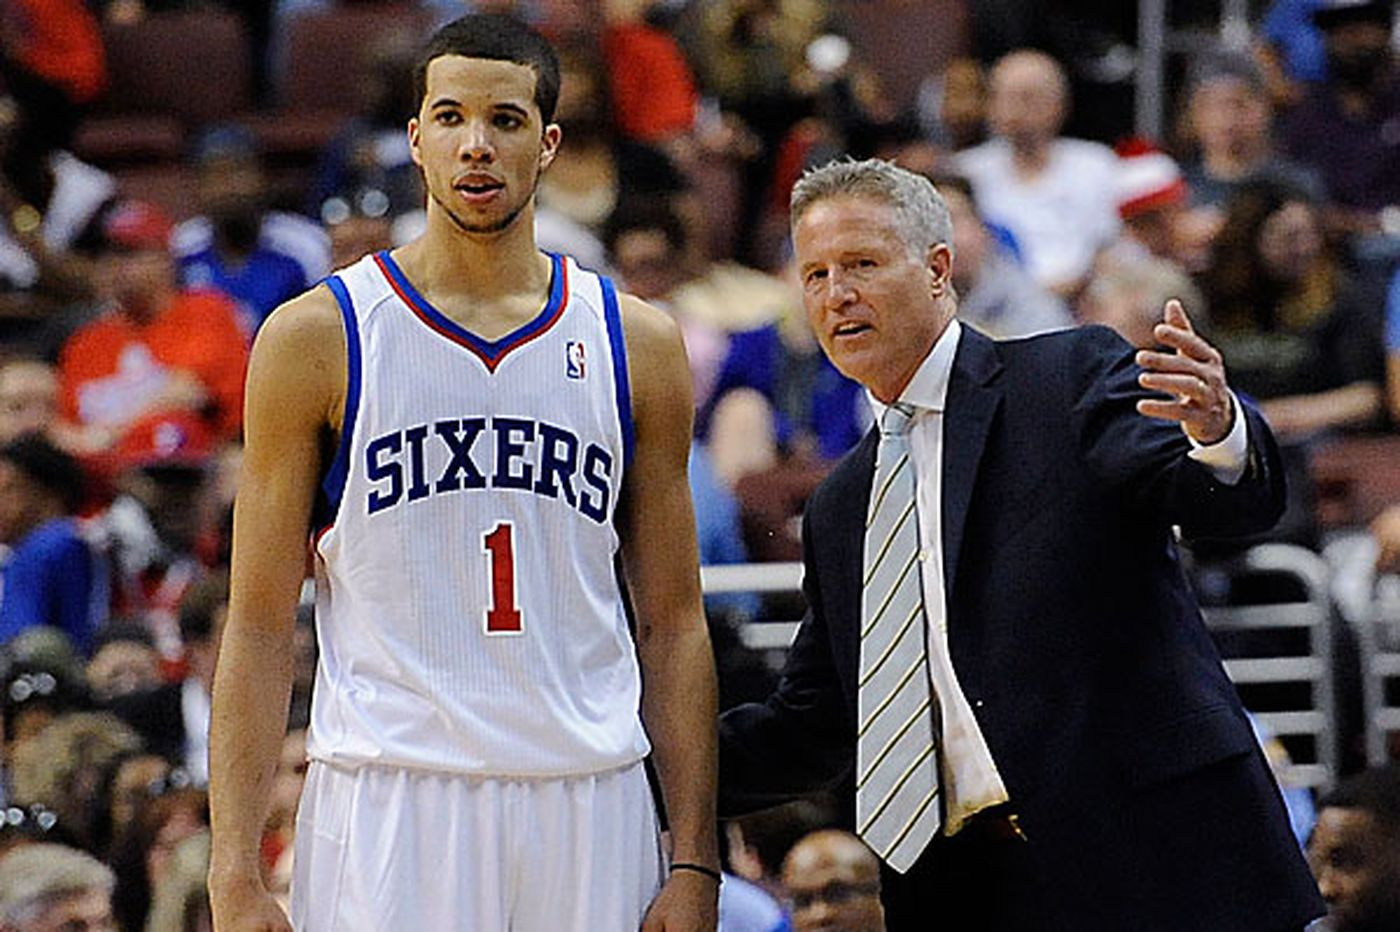 Sixers players have a road map to follow this offseason